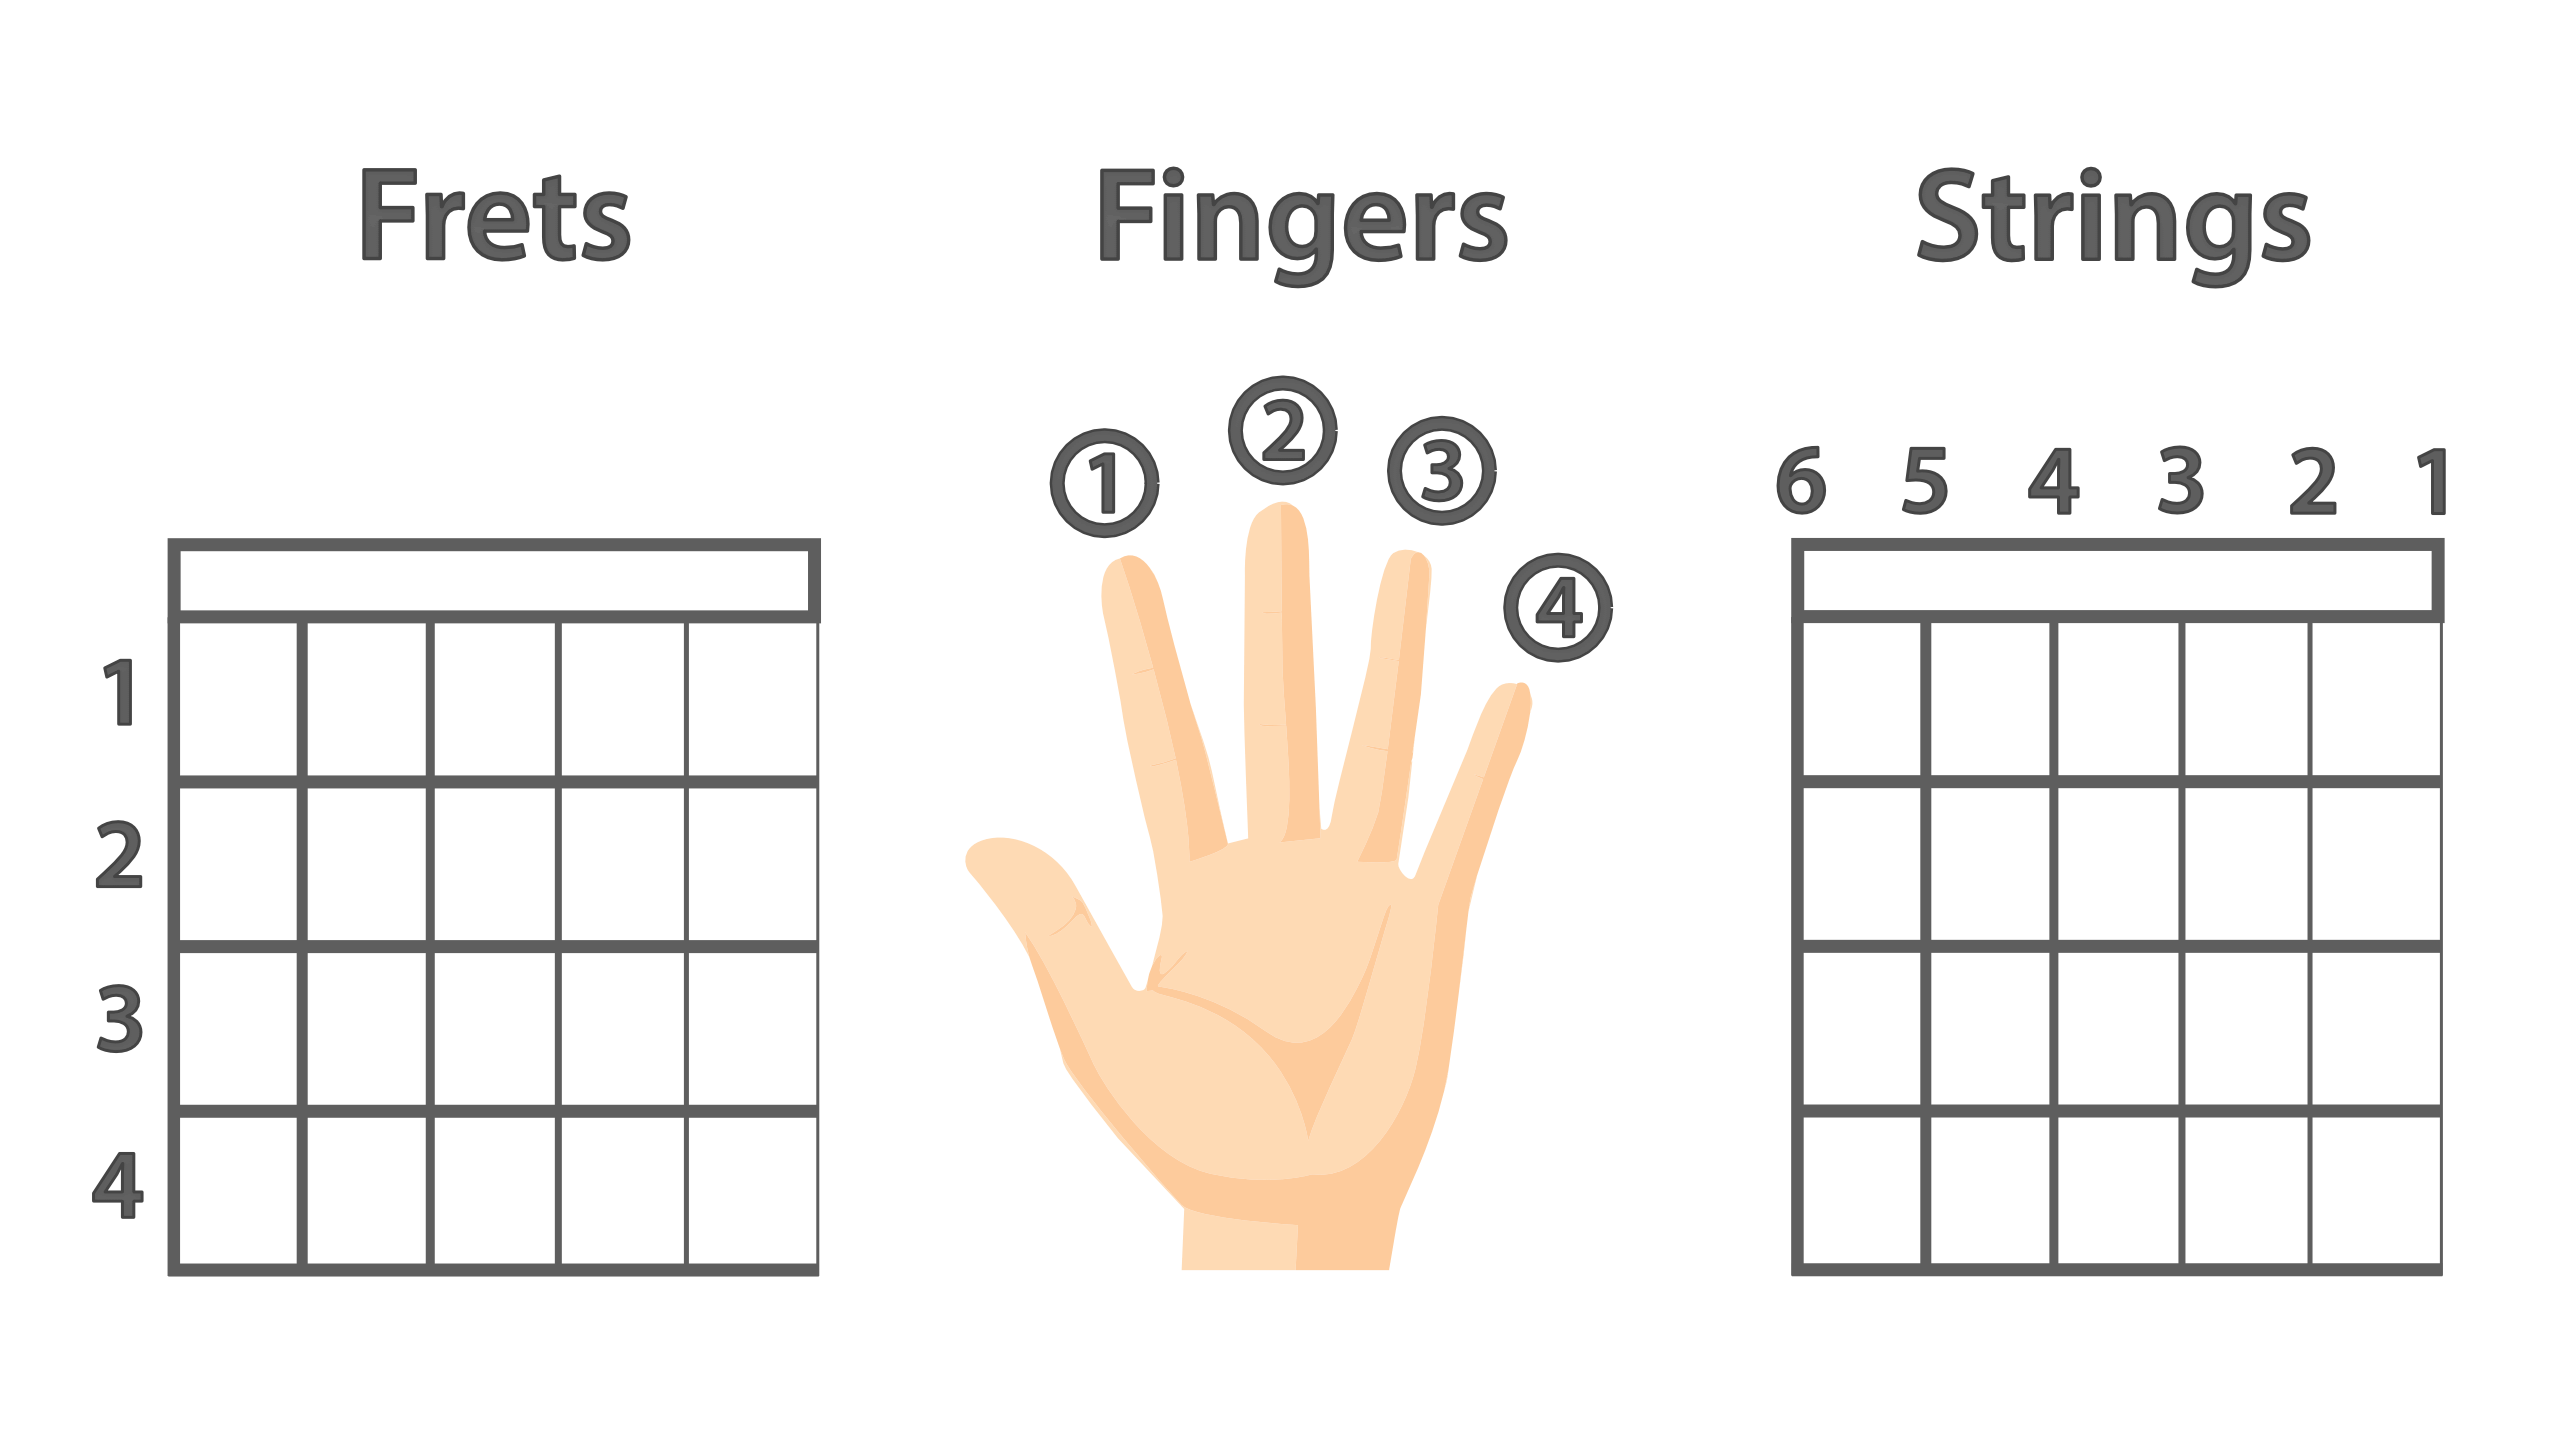 Fingering for guitar